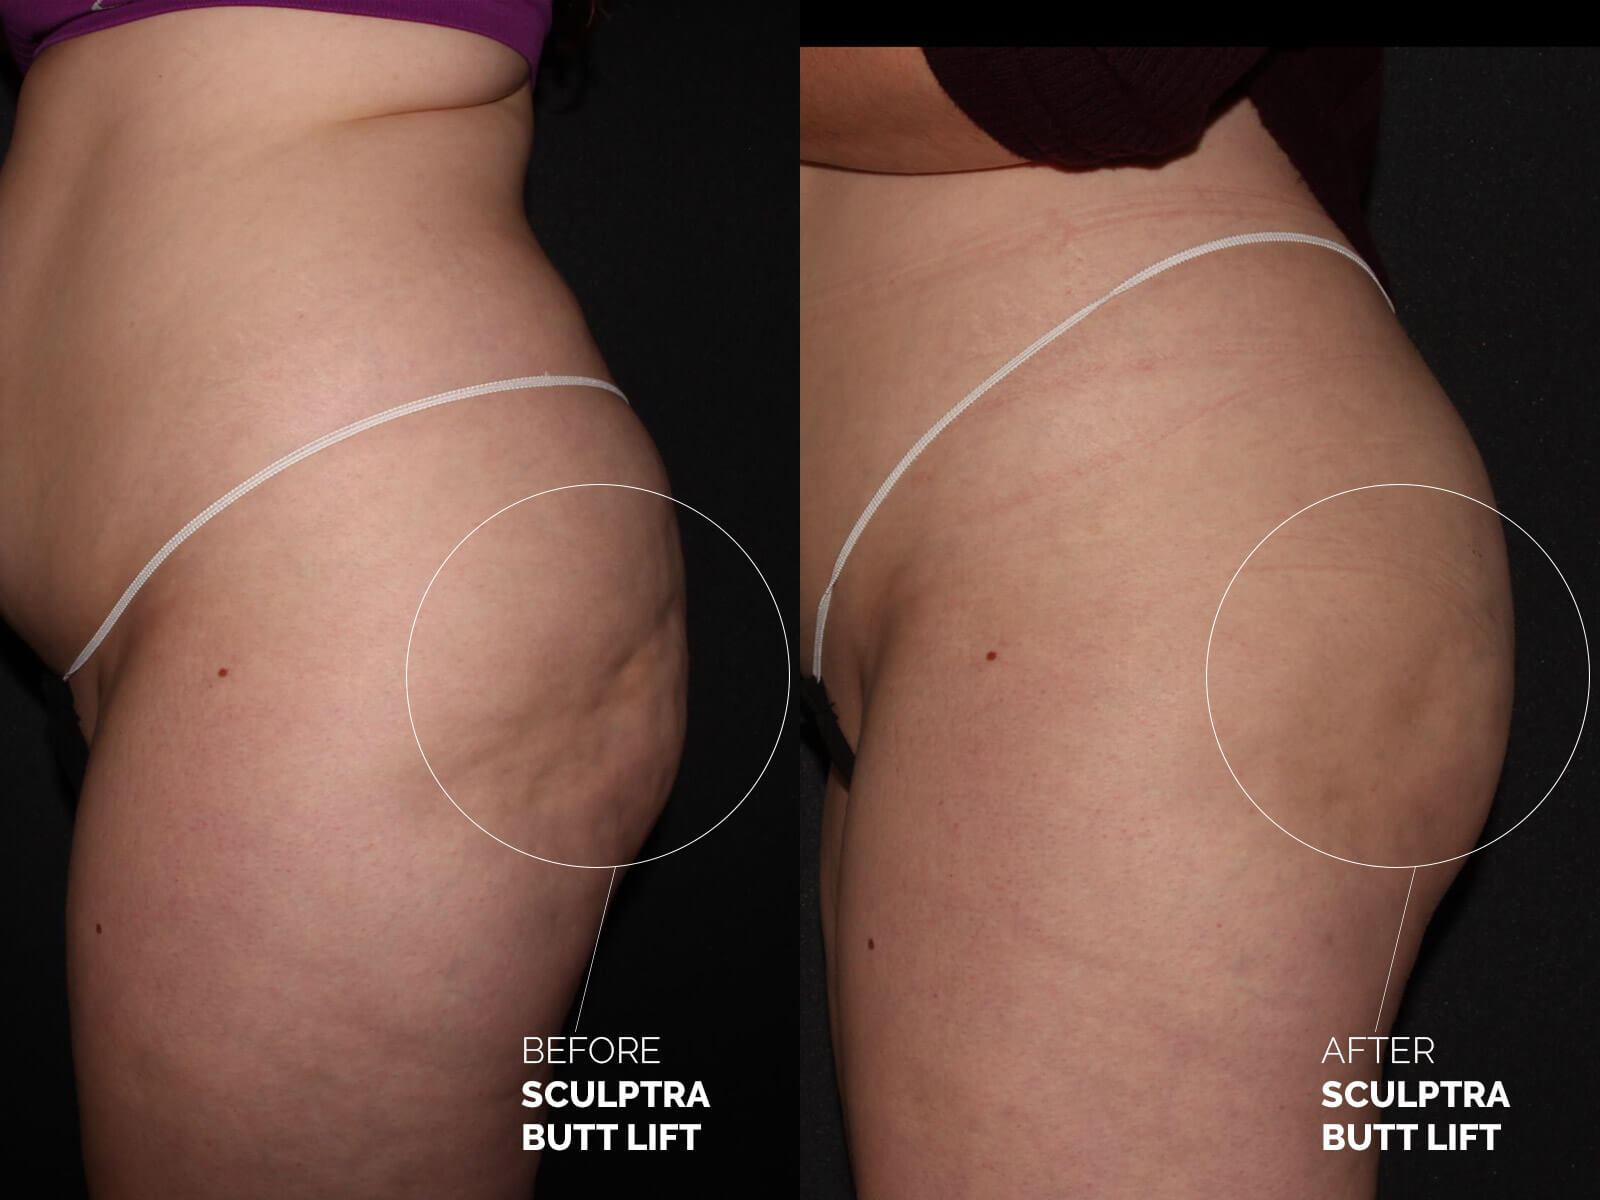 sculptra-butt-lift-before-after